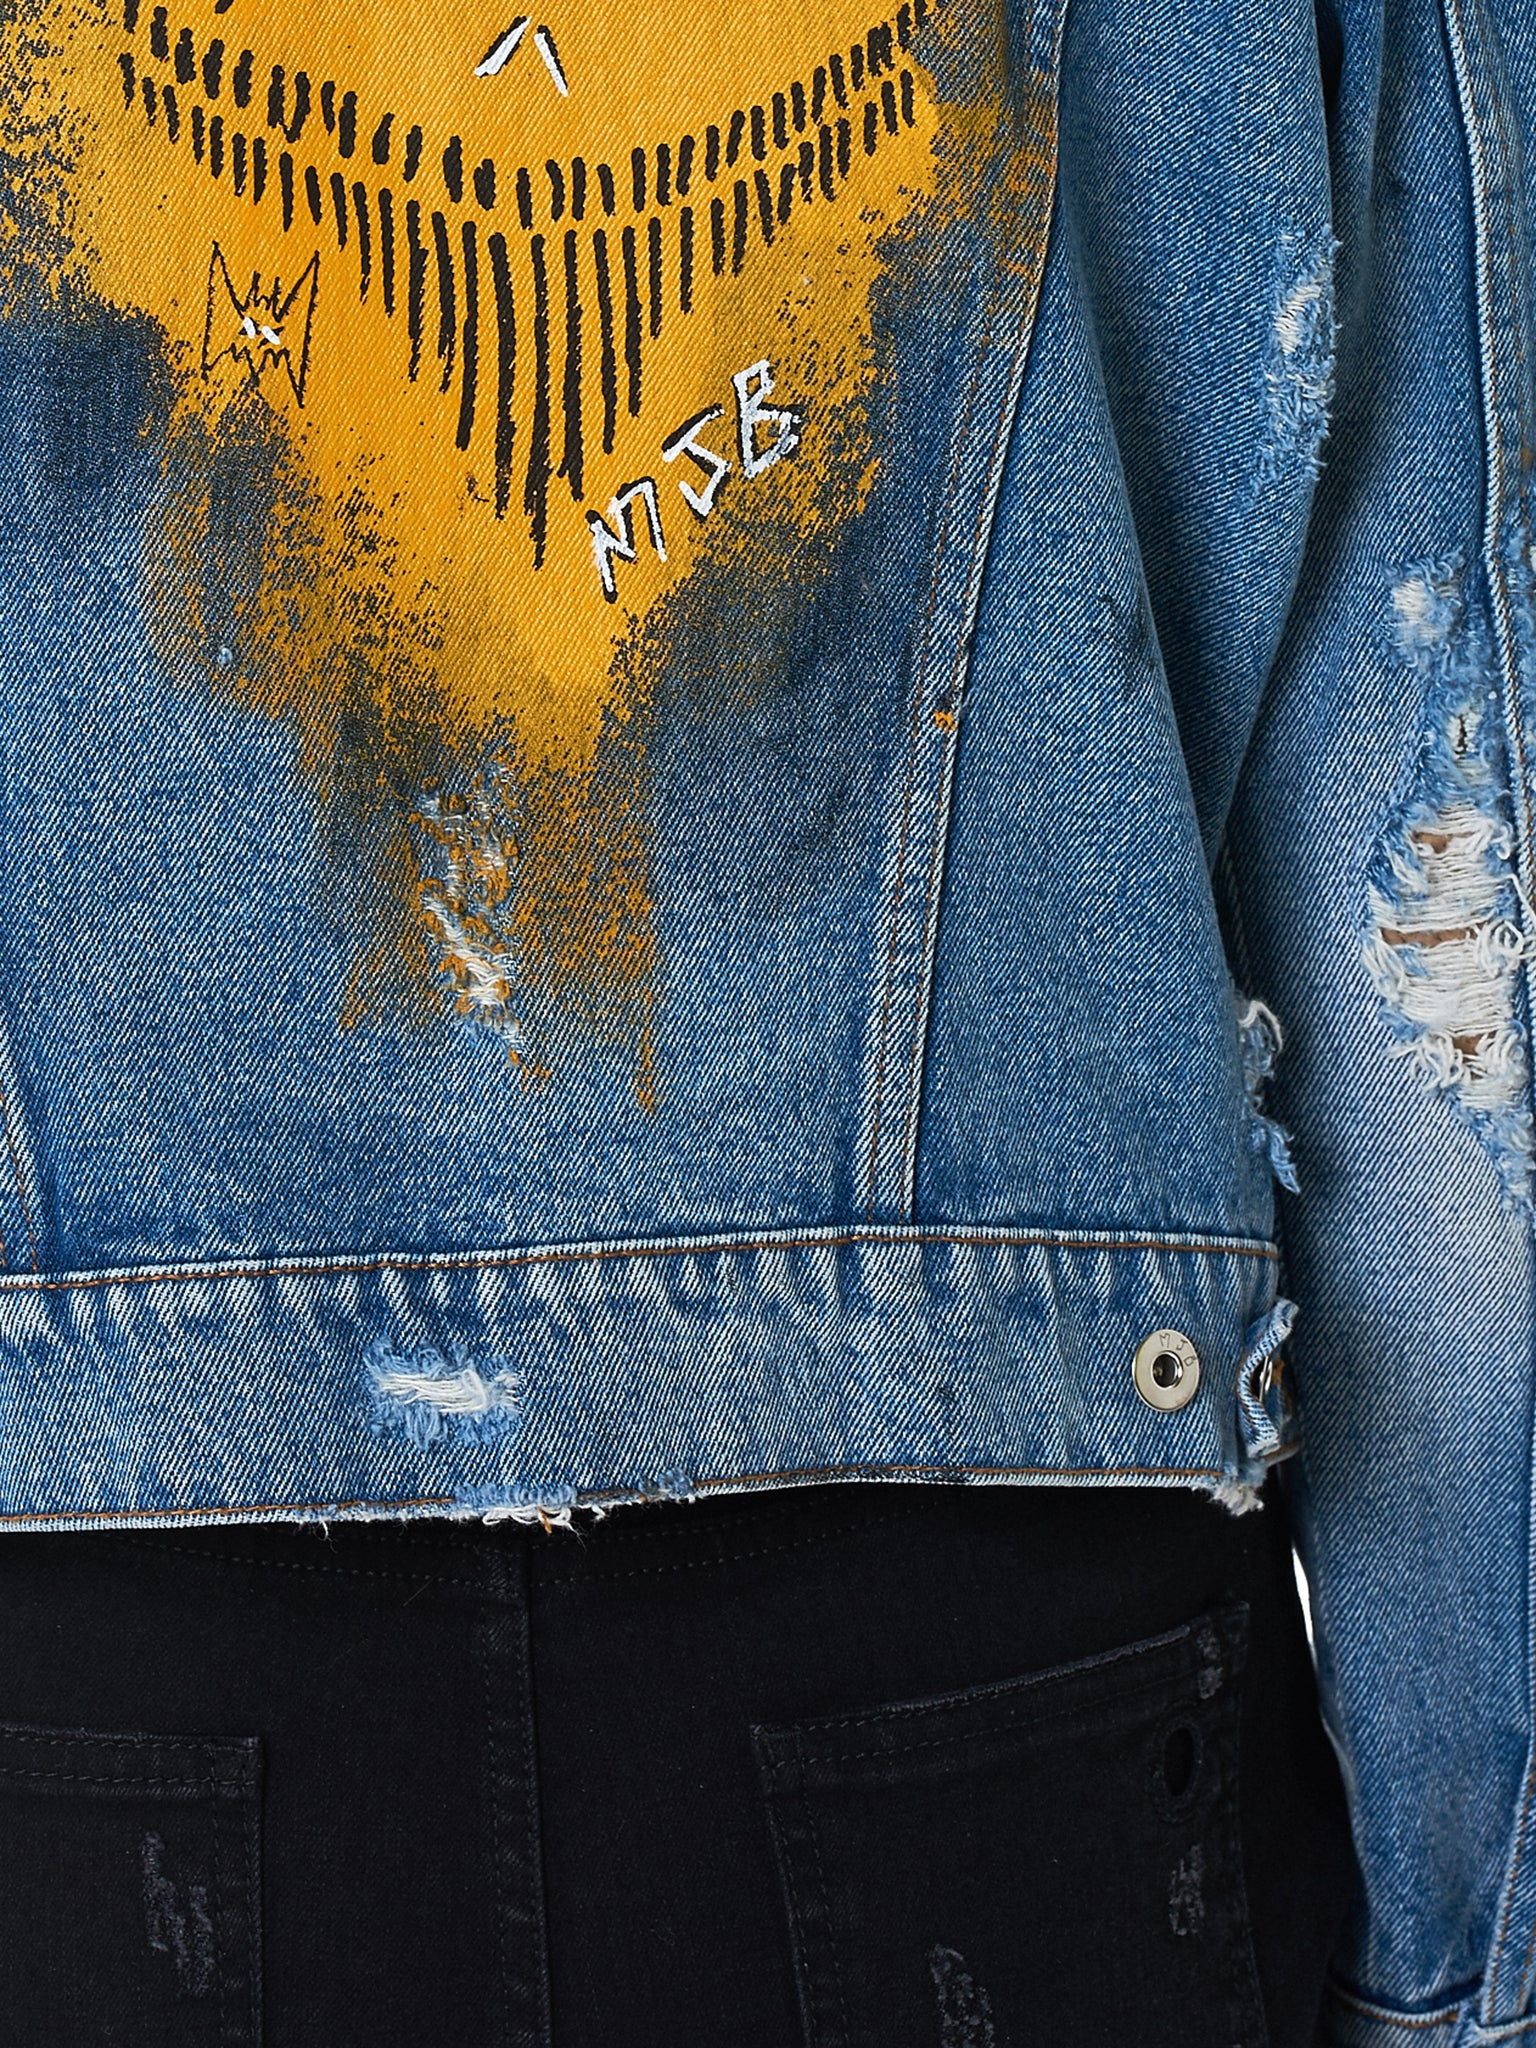 MJB (Marc Jacques Burton) Denim Jacket - Hlorenzo Detail 1